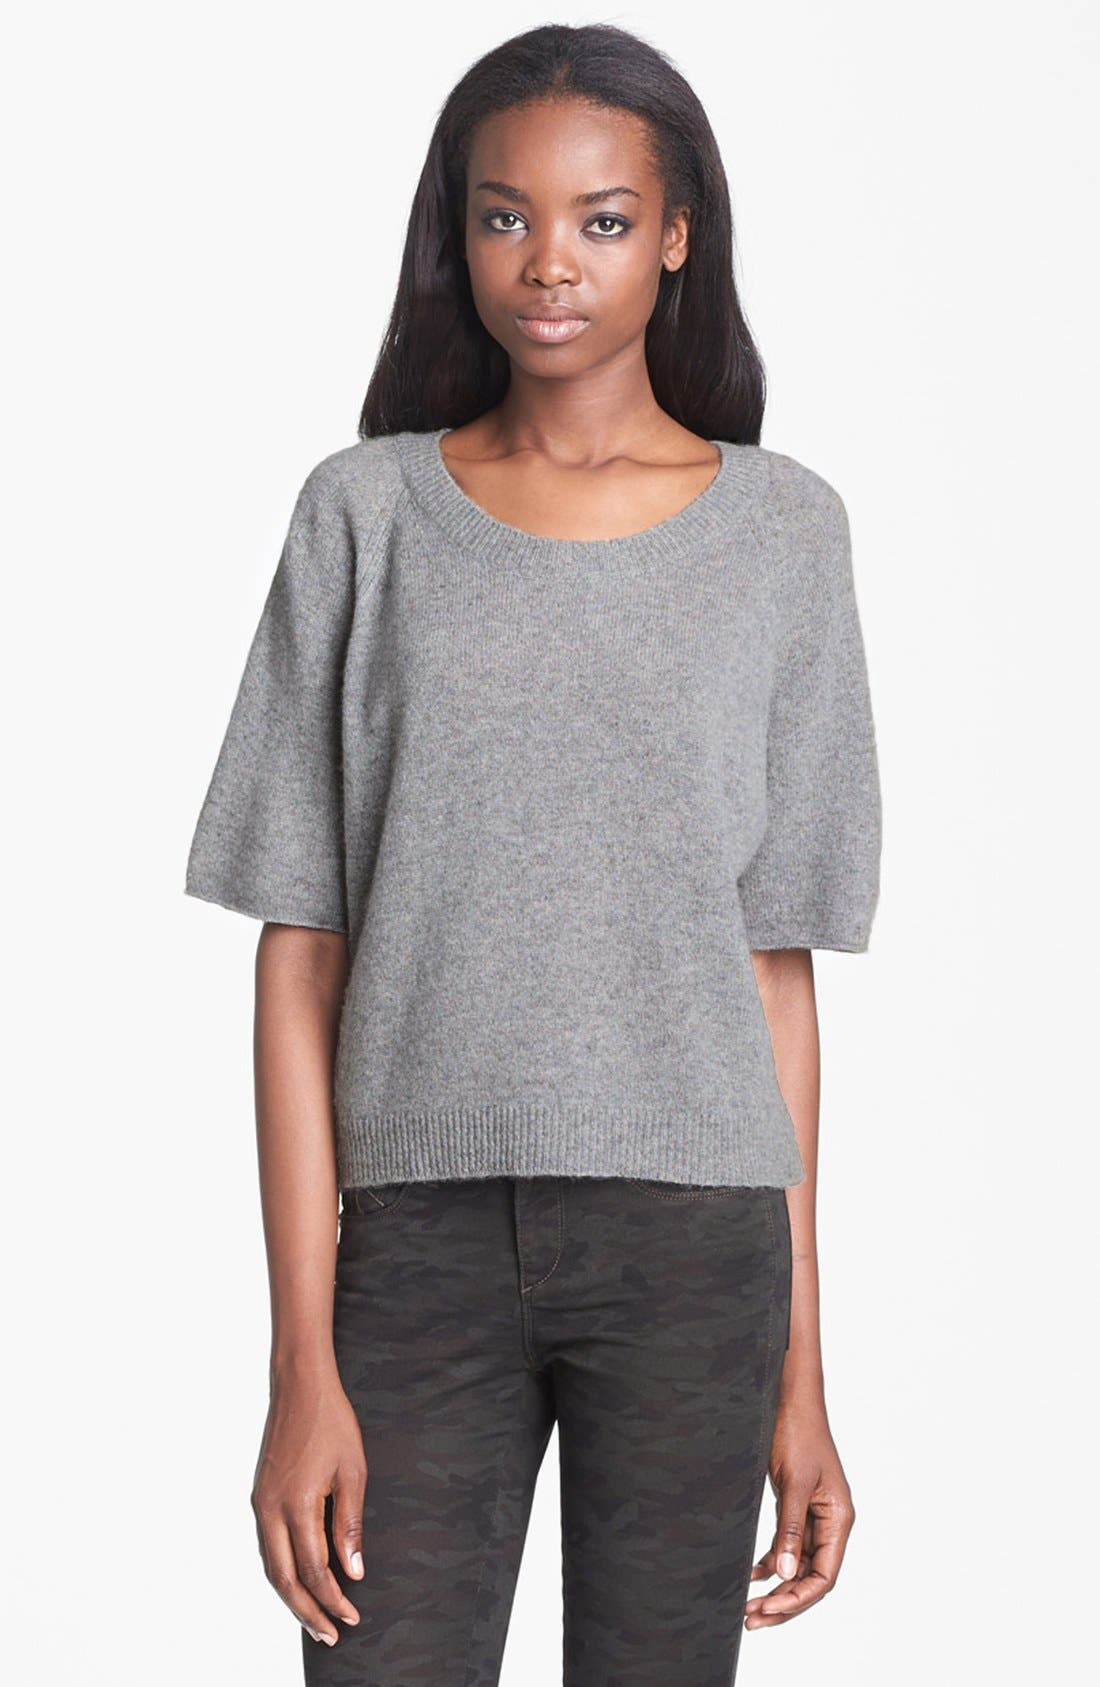 Alternate Image 1 Selected - Enza Costa Cashmere Top